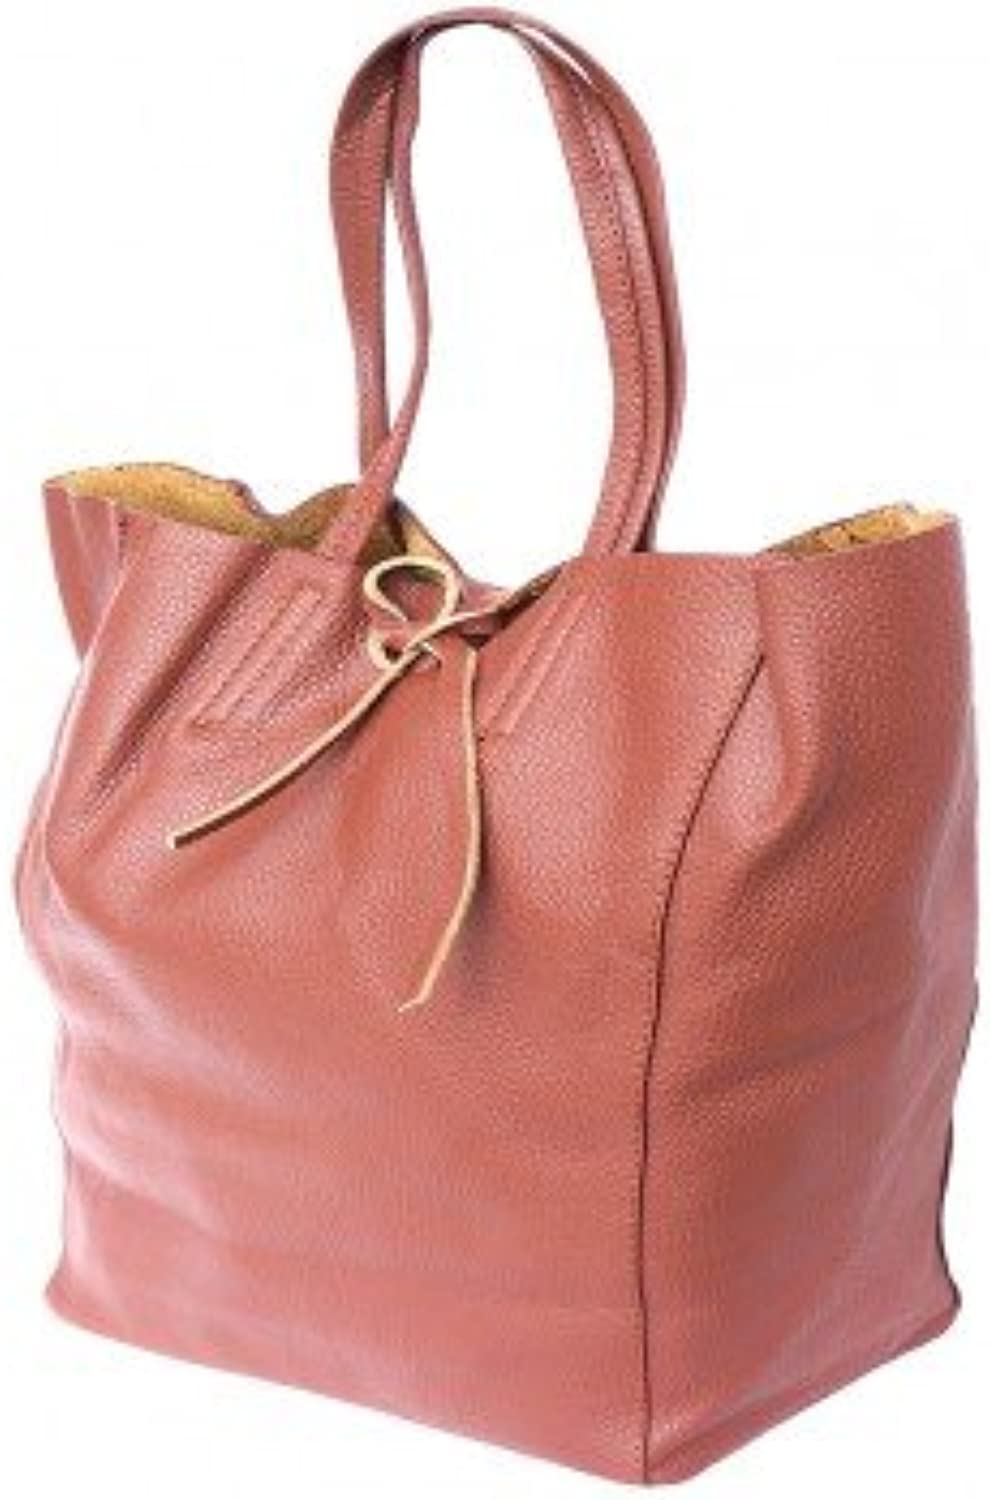 Imported Tote Shopping Bag in Genuine Leather Brown